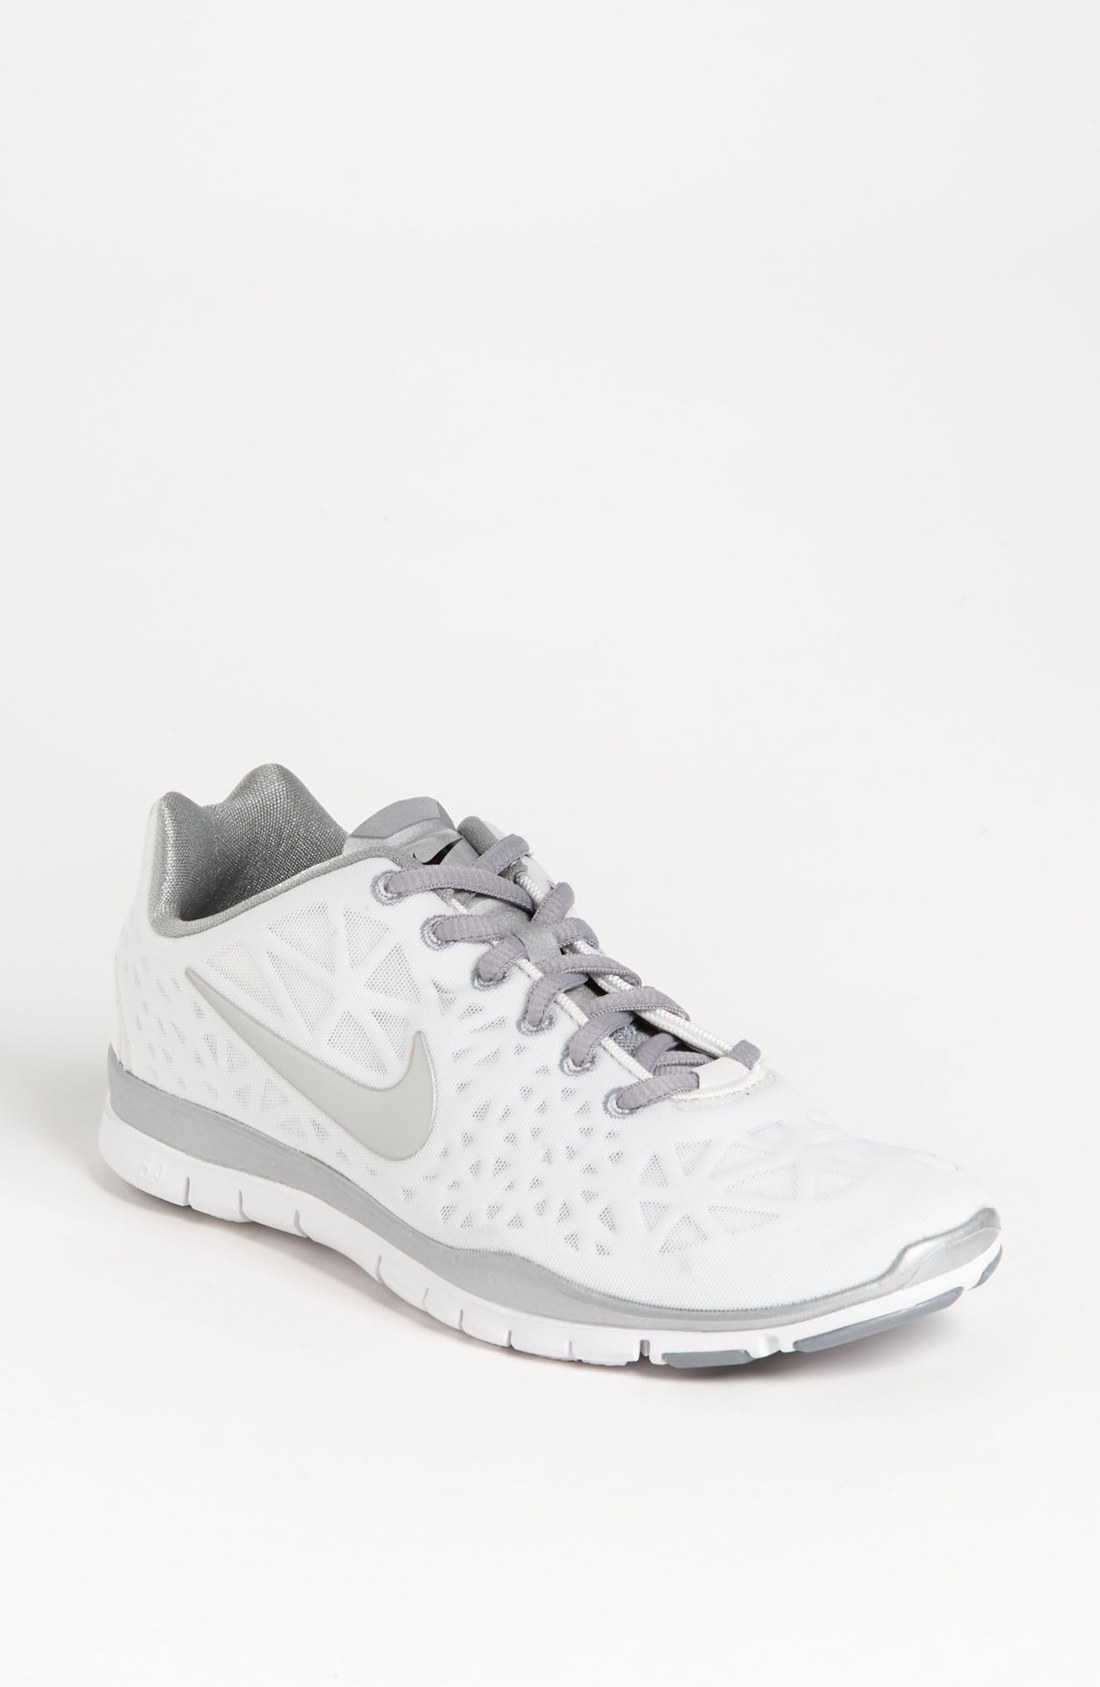 nike free tr fit 3 women's cross training shoes